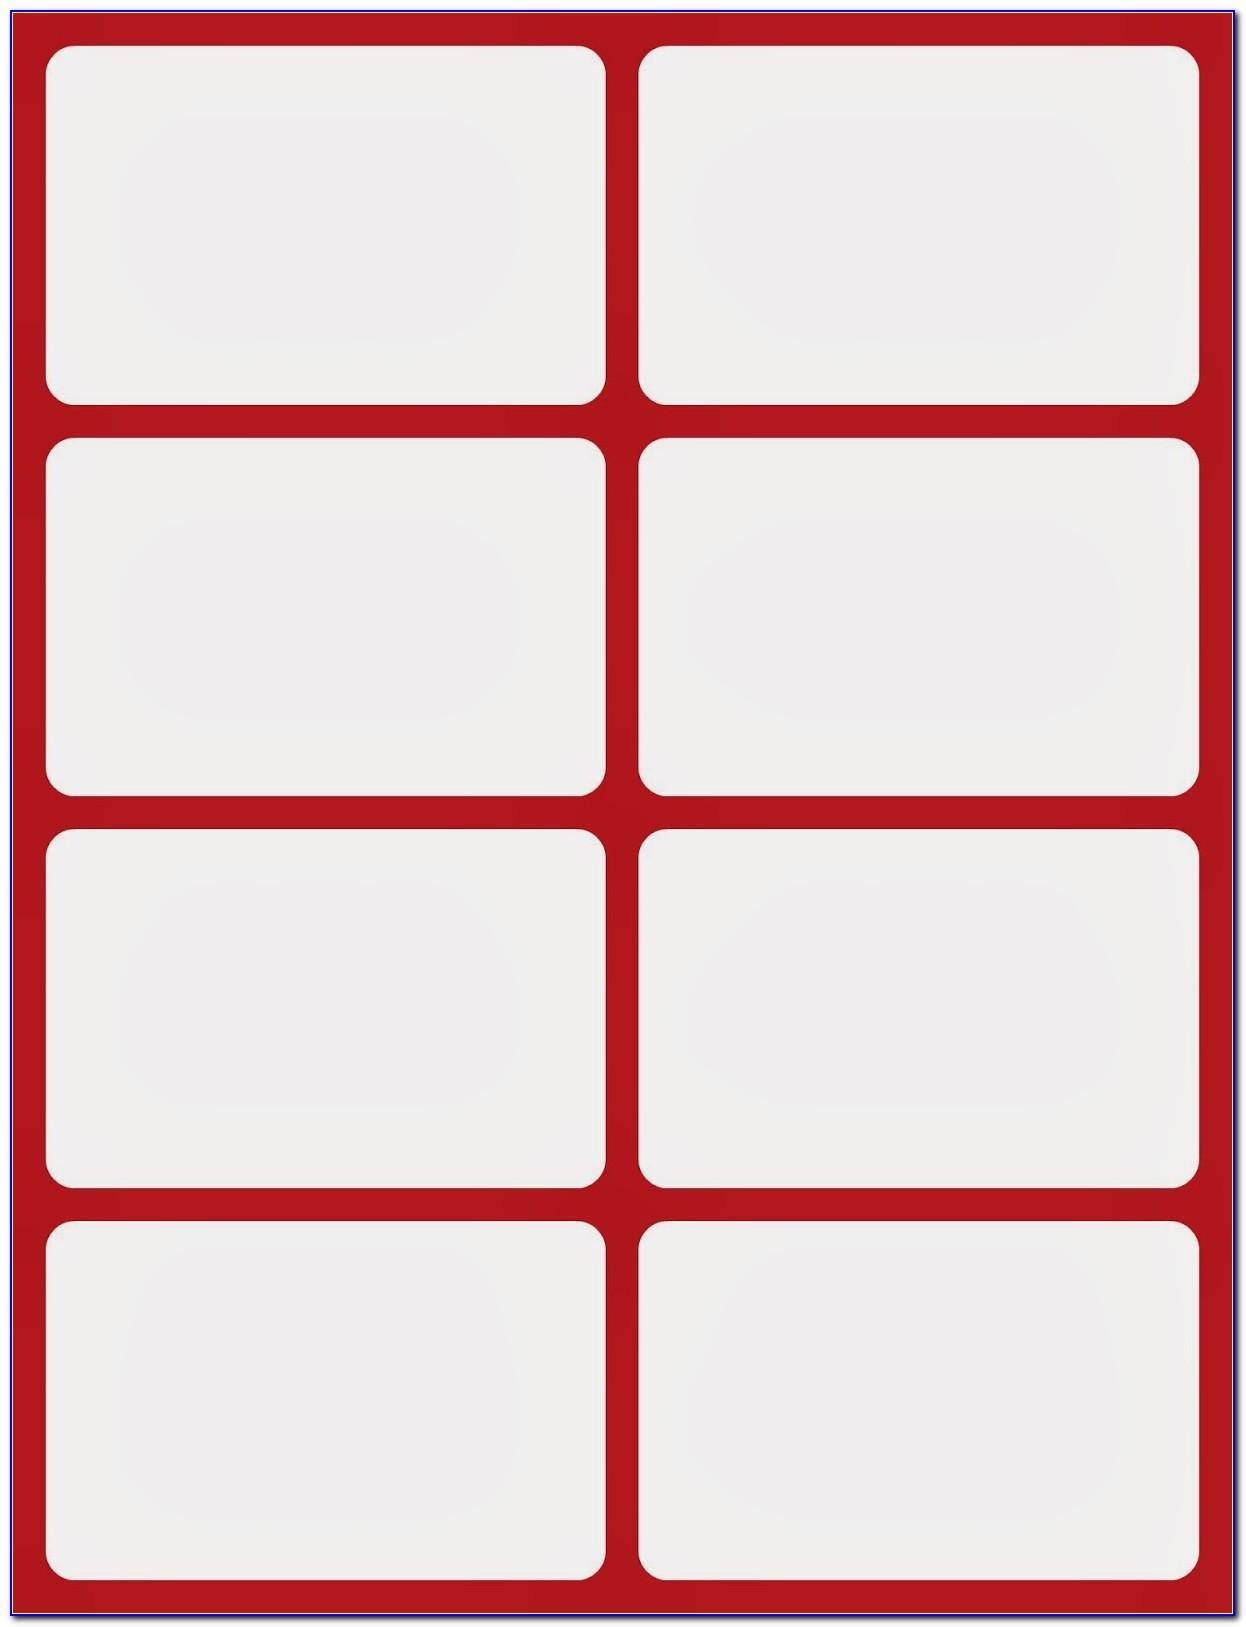 Blank Flash Card Template Word